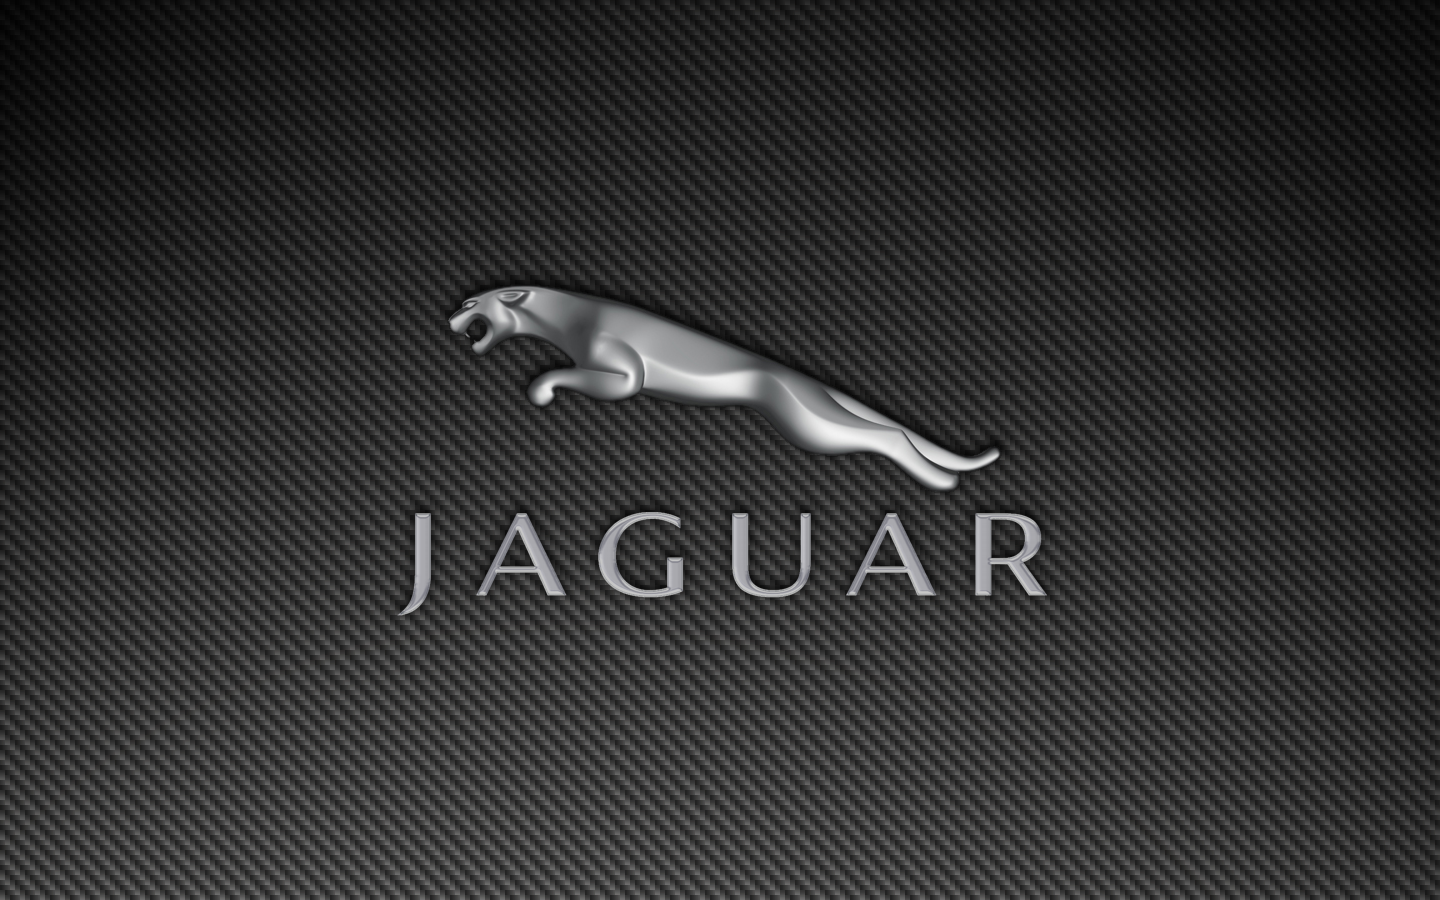 Color Of The Jaguar Logo